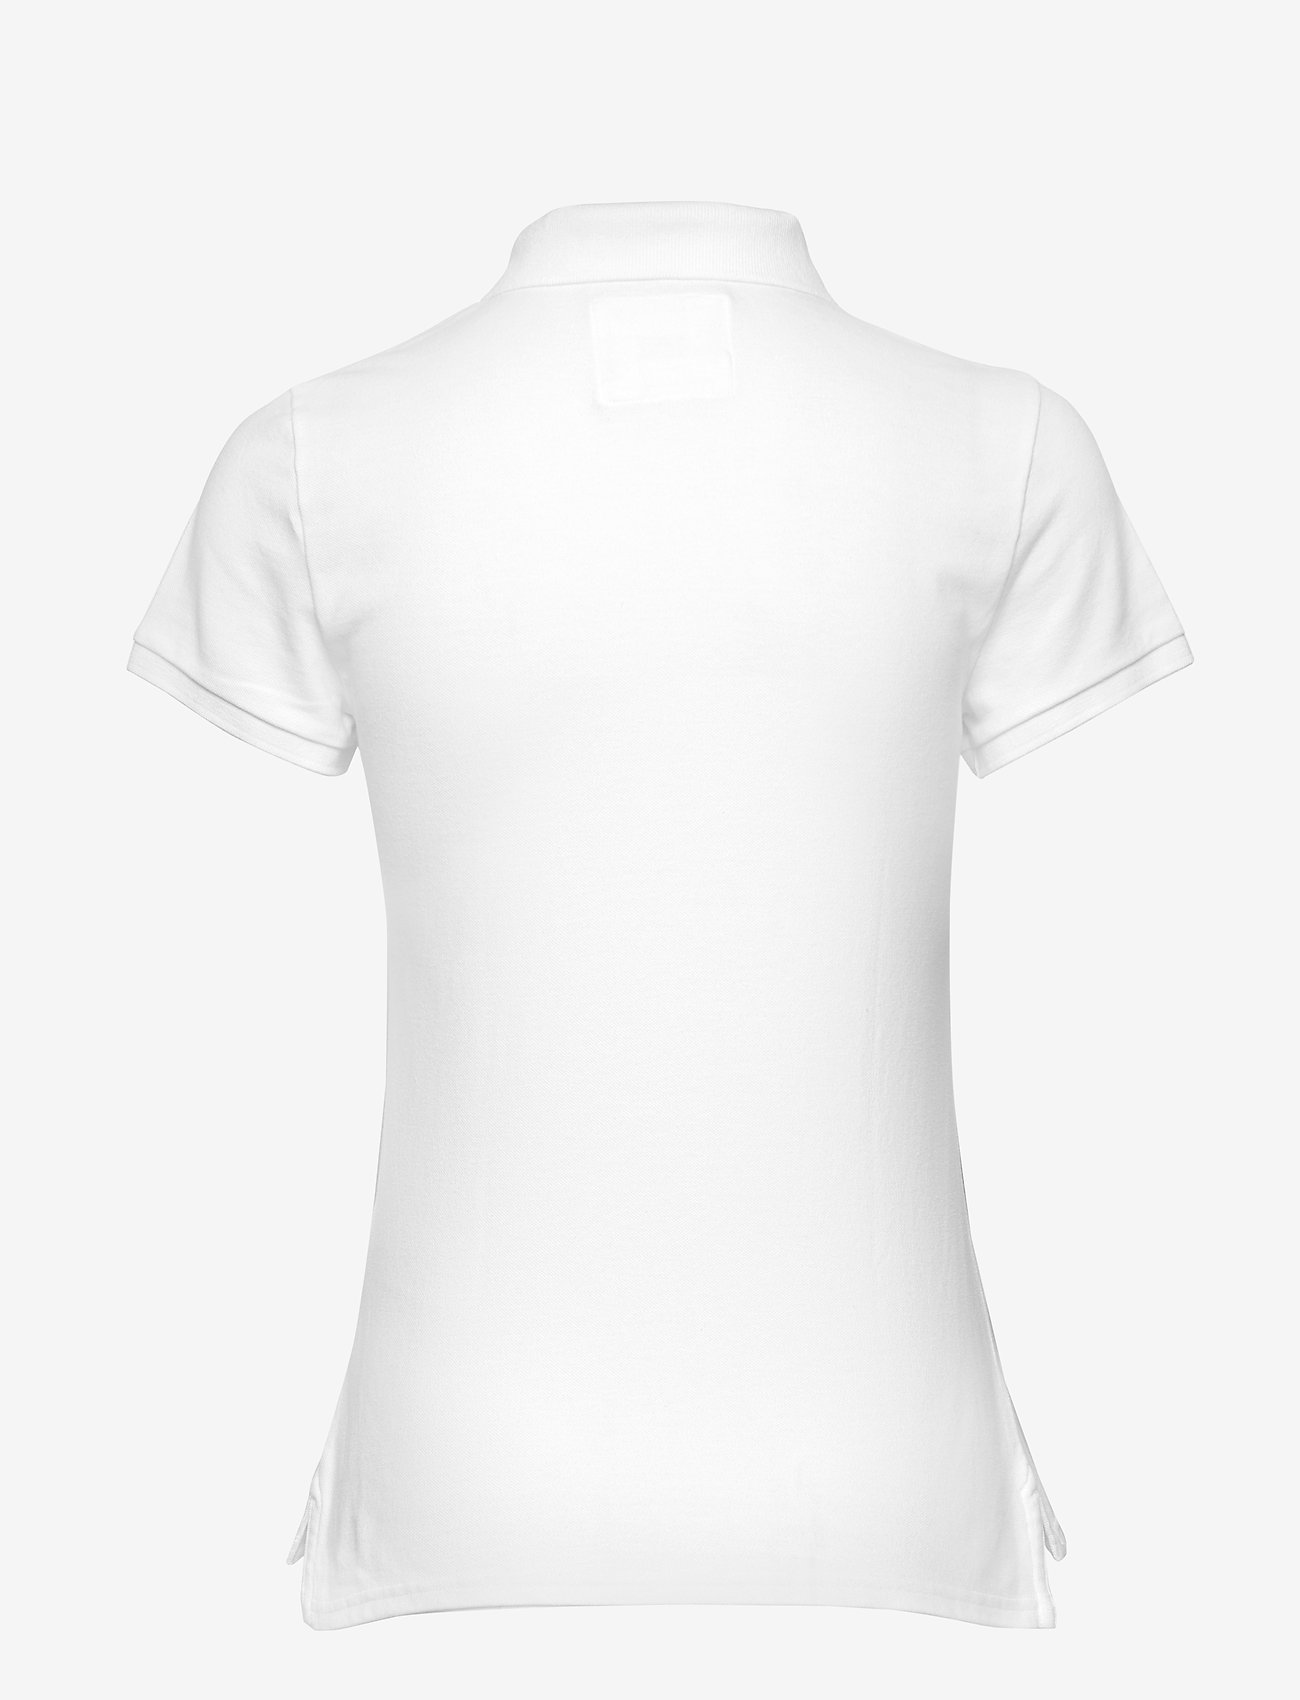 Abercrombie & Fitch - Polo - basic t-shirts - white - 1